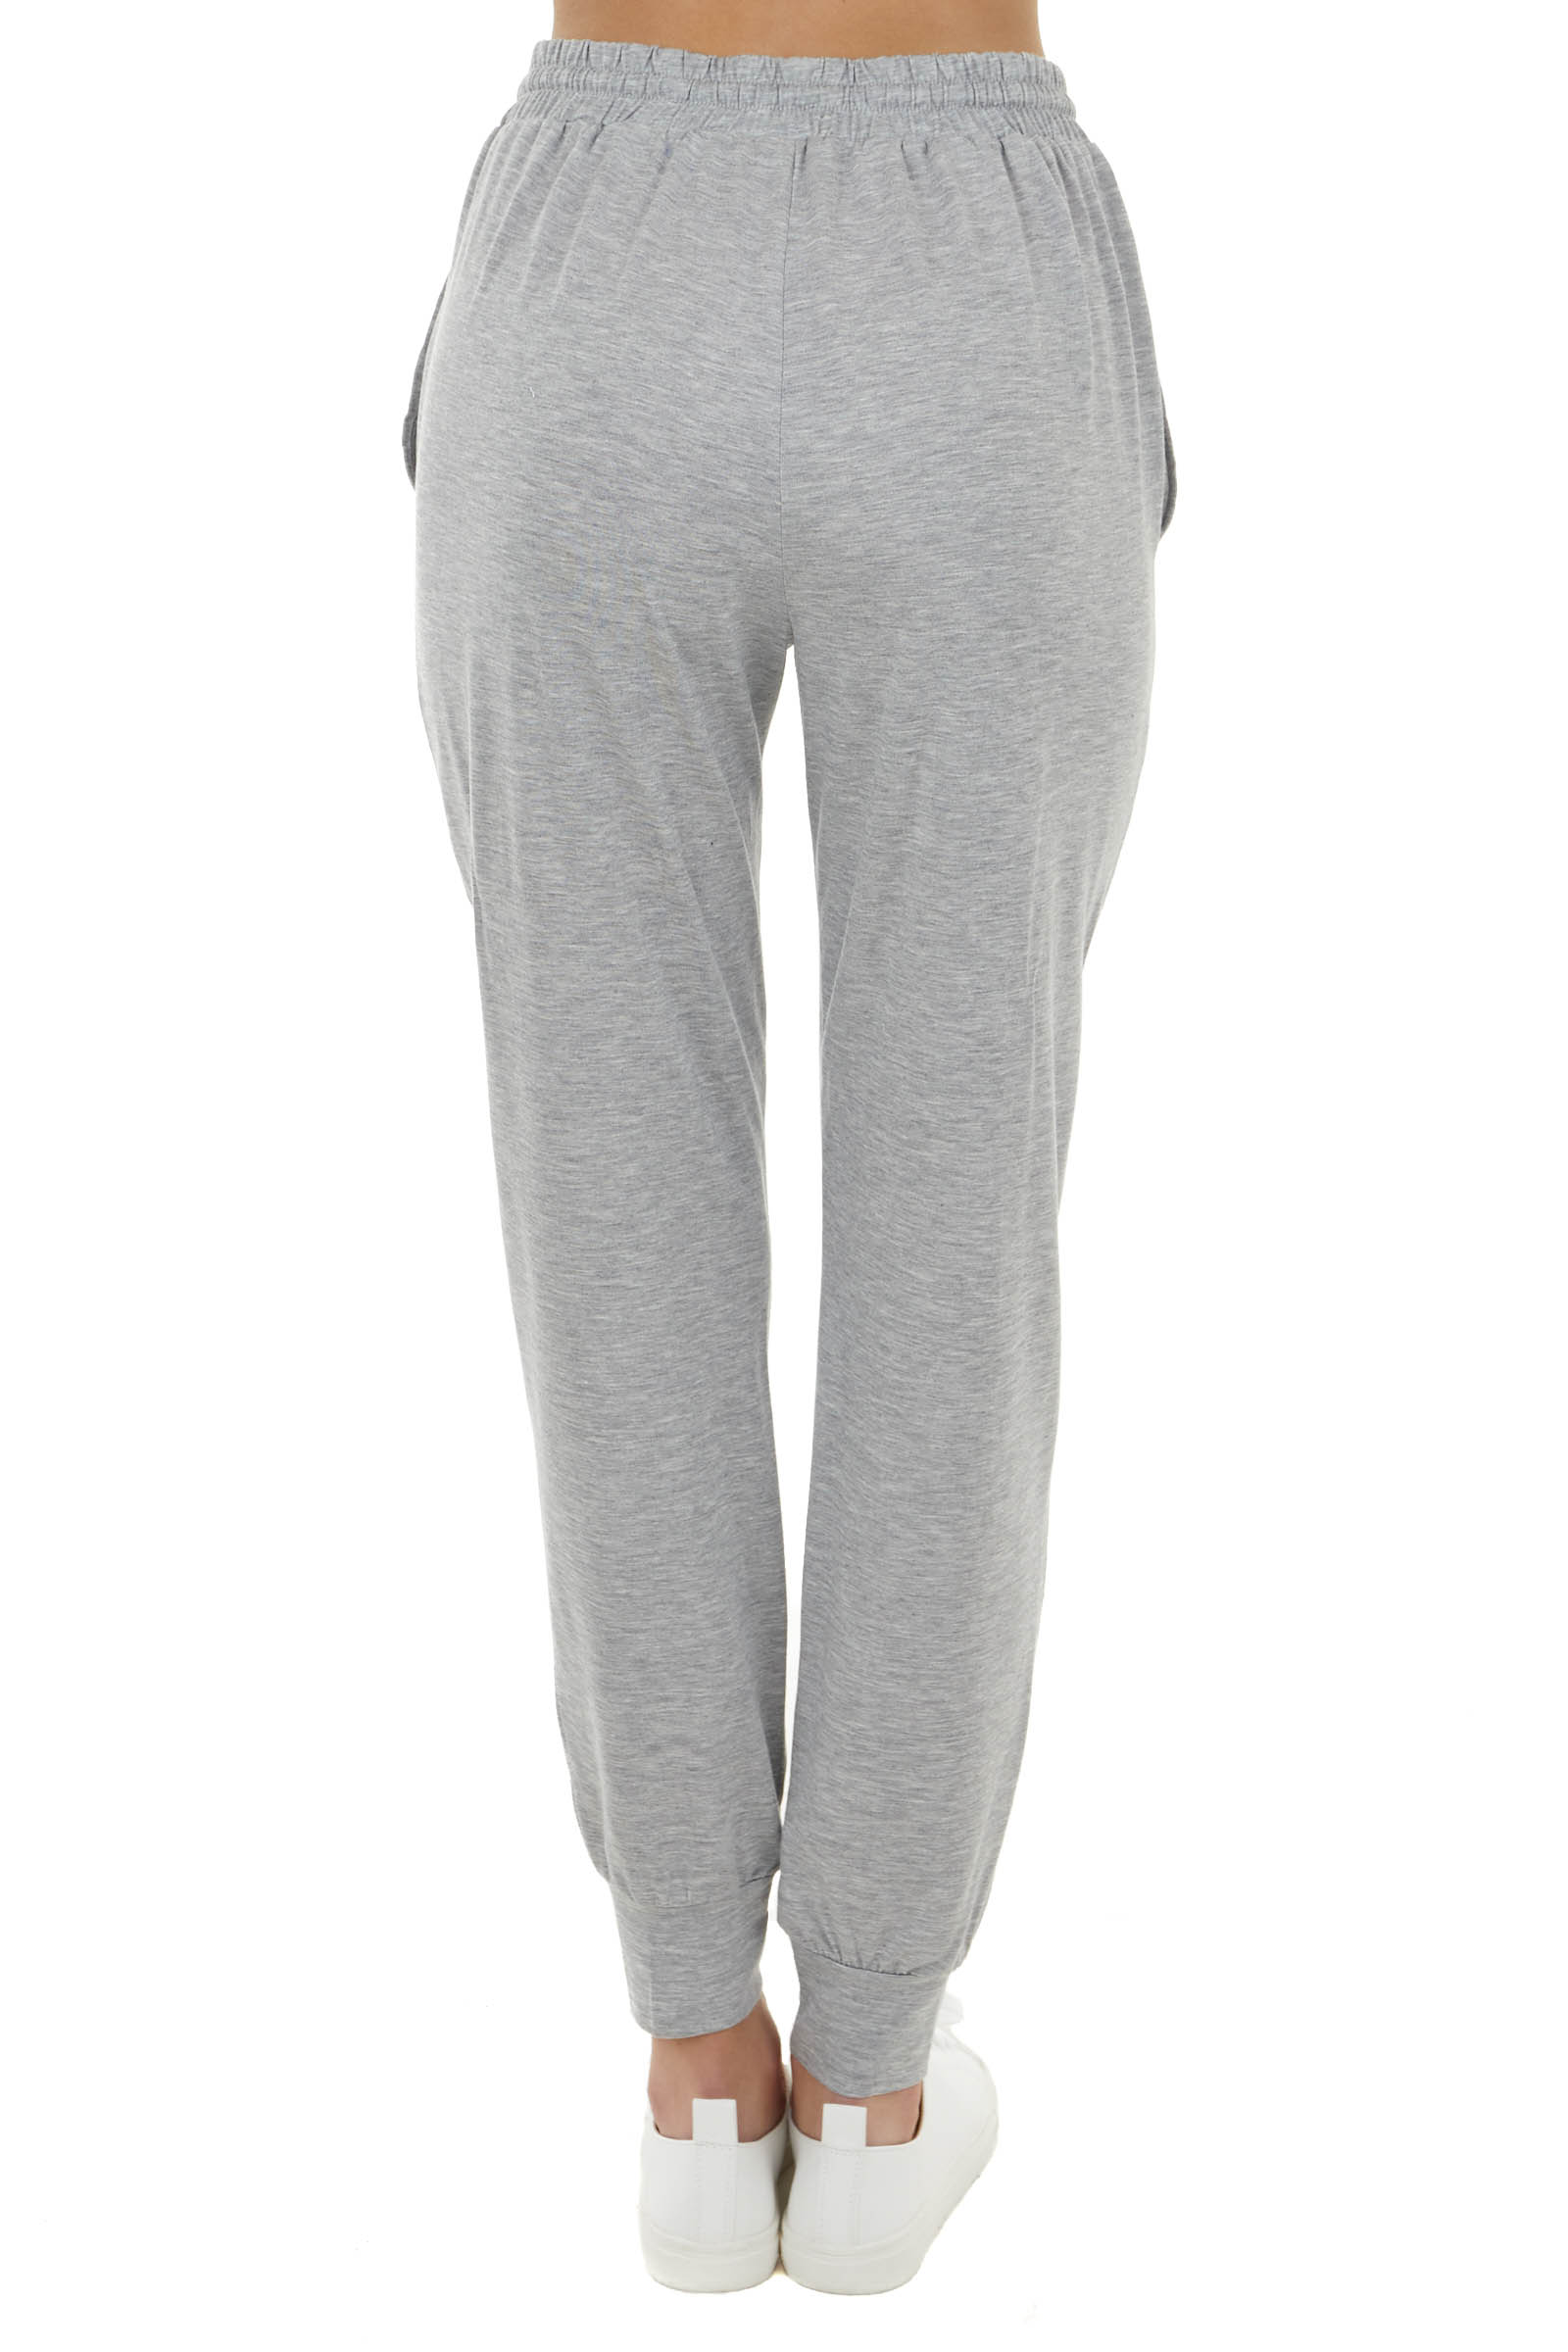 Heather Stretchy Knit Joggers with Functional Drawstring